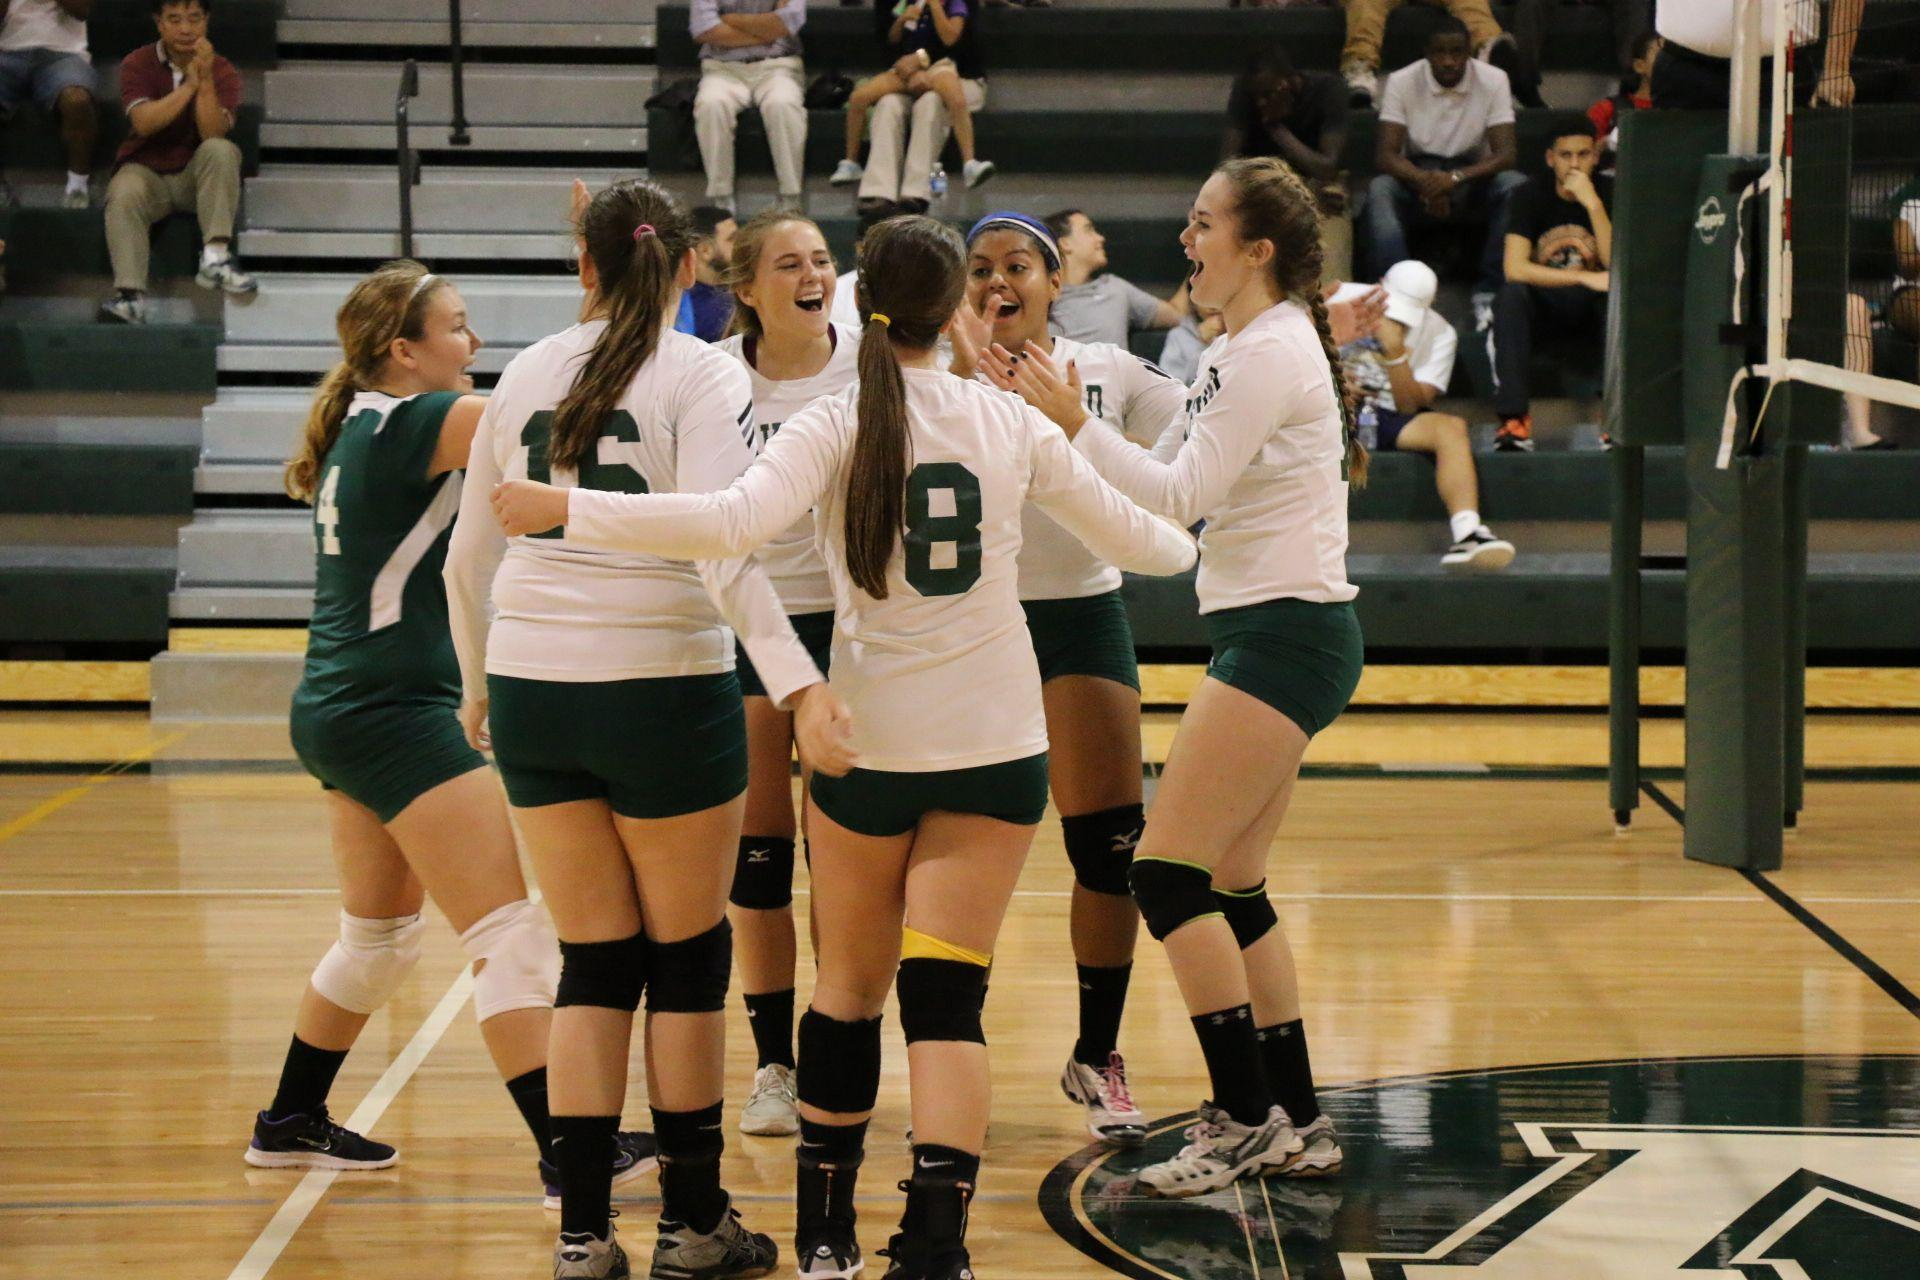 Warriors celebrating another point in their home gym!